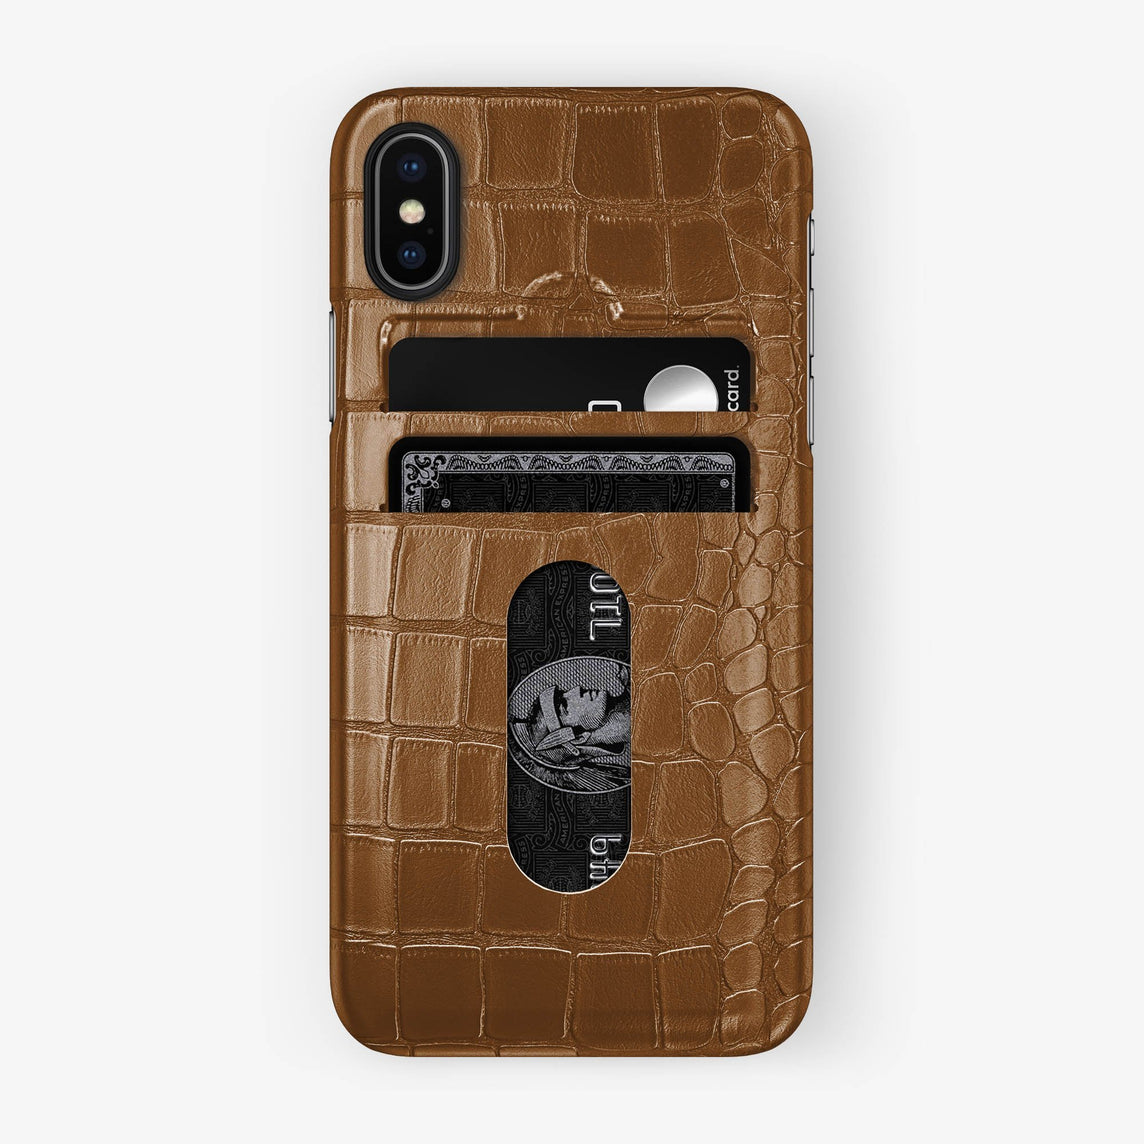 Alligator Card Holder Case iPhone X/Xs | Cognac - Black - Hadoro